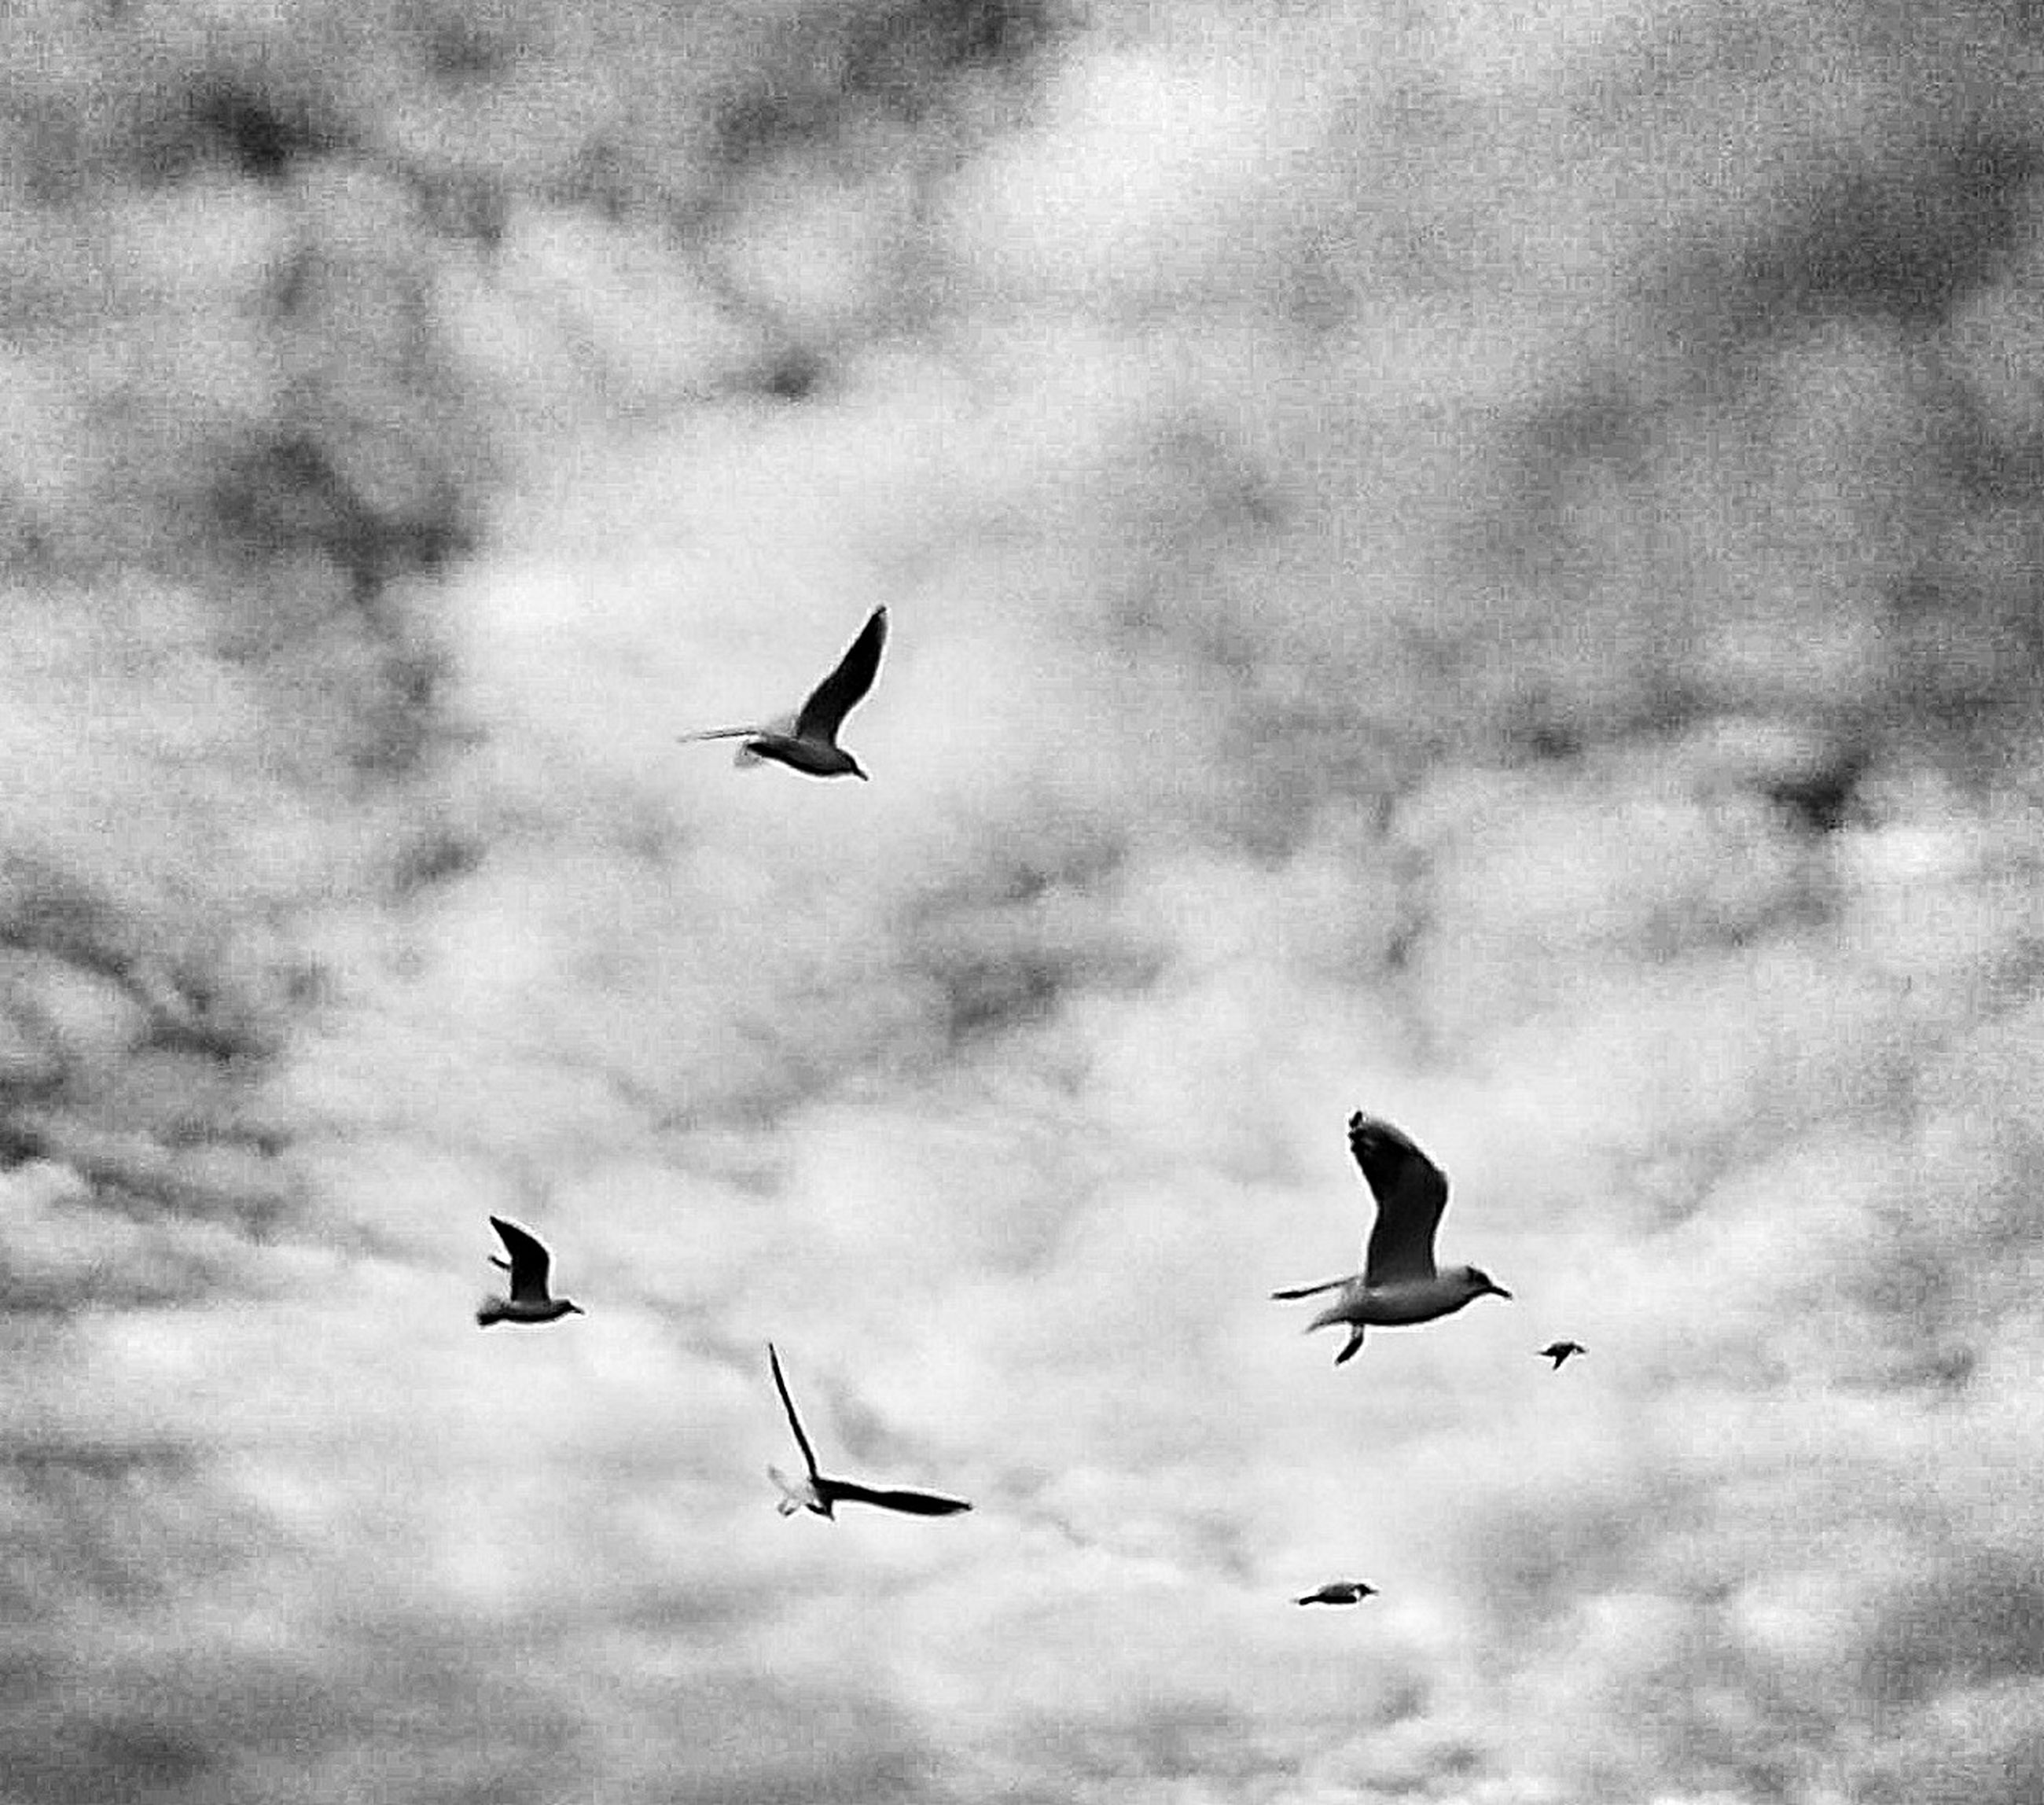 flying, bird, animal themes, animals in the wild, spread wings, wildlife, mid-air, sky, low angle view, cloud - sky, cloudy, cloud, nature, motion, seagull, silhouette, beauty in nature, outdoors, overcast, on the move